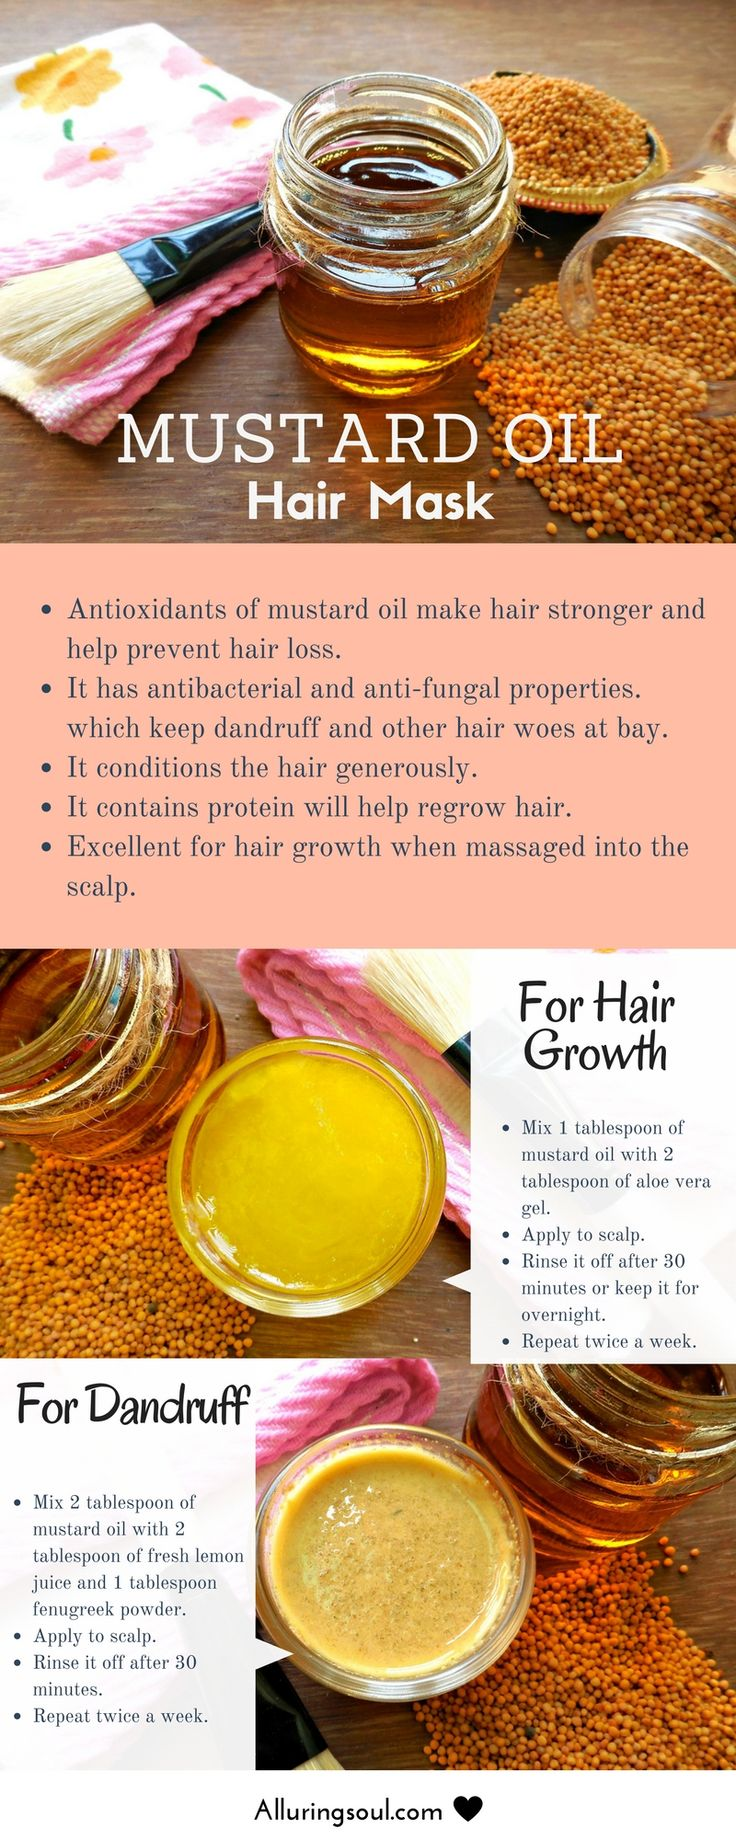 DIY Hair Mask Of Mustard Oil For Hair Growth And Dandruff